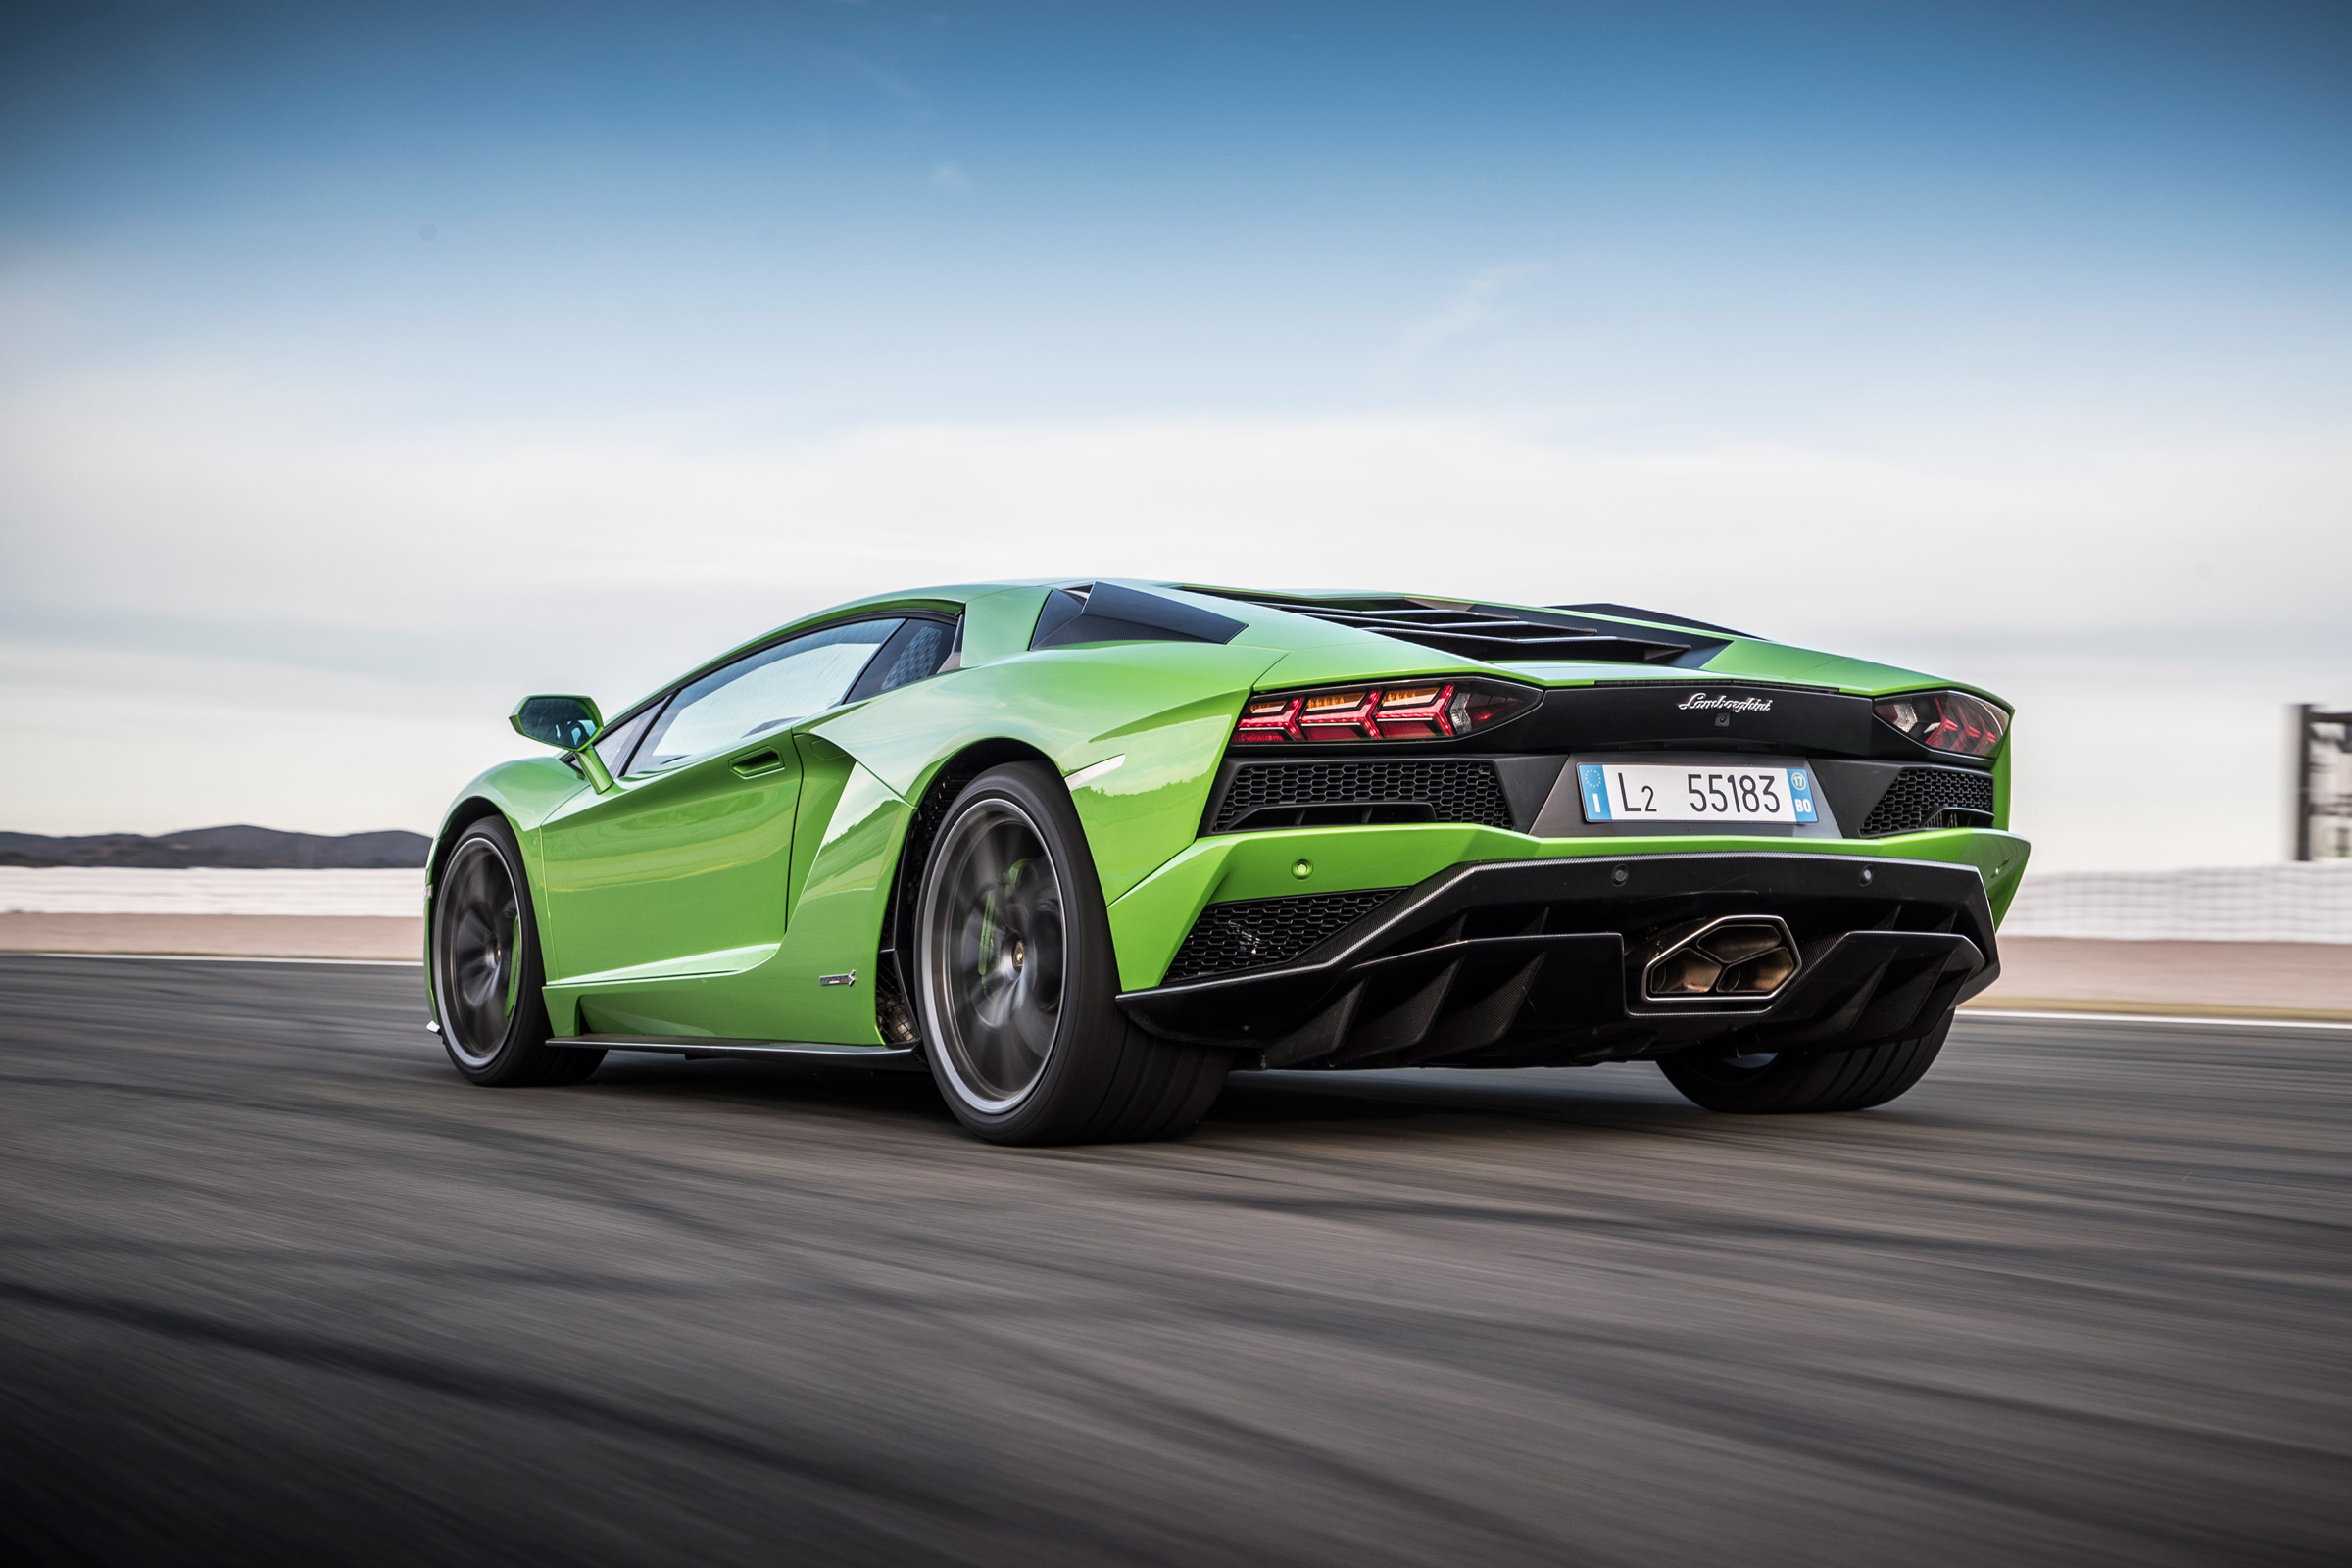 2017 Lamborghini Aventador S Green Rear And Side View (Photo 11 of 20)